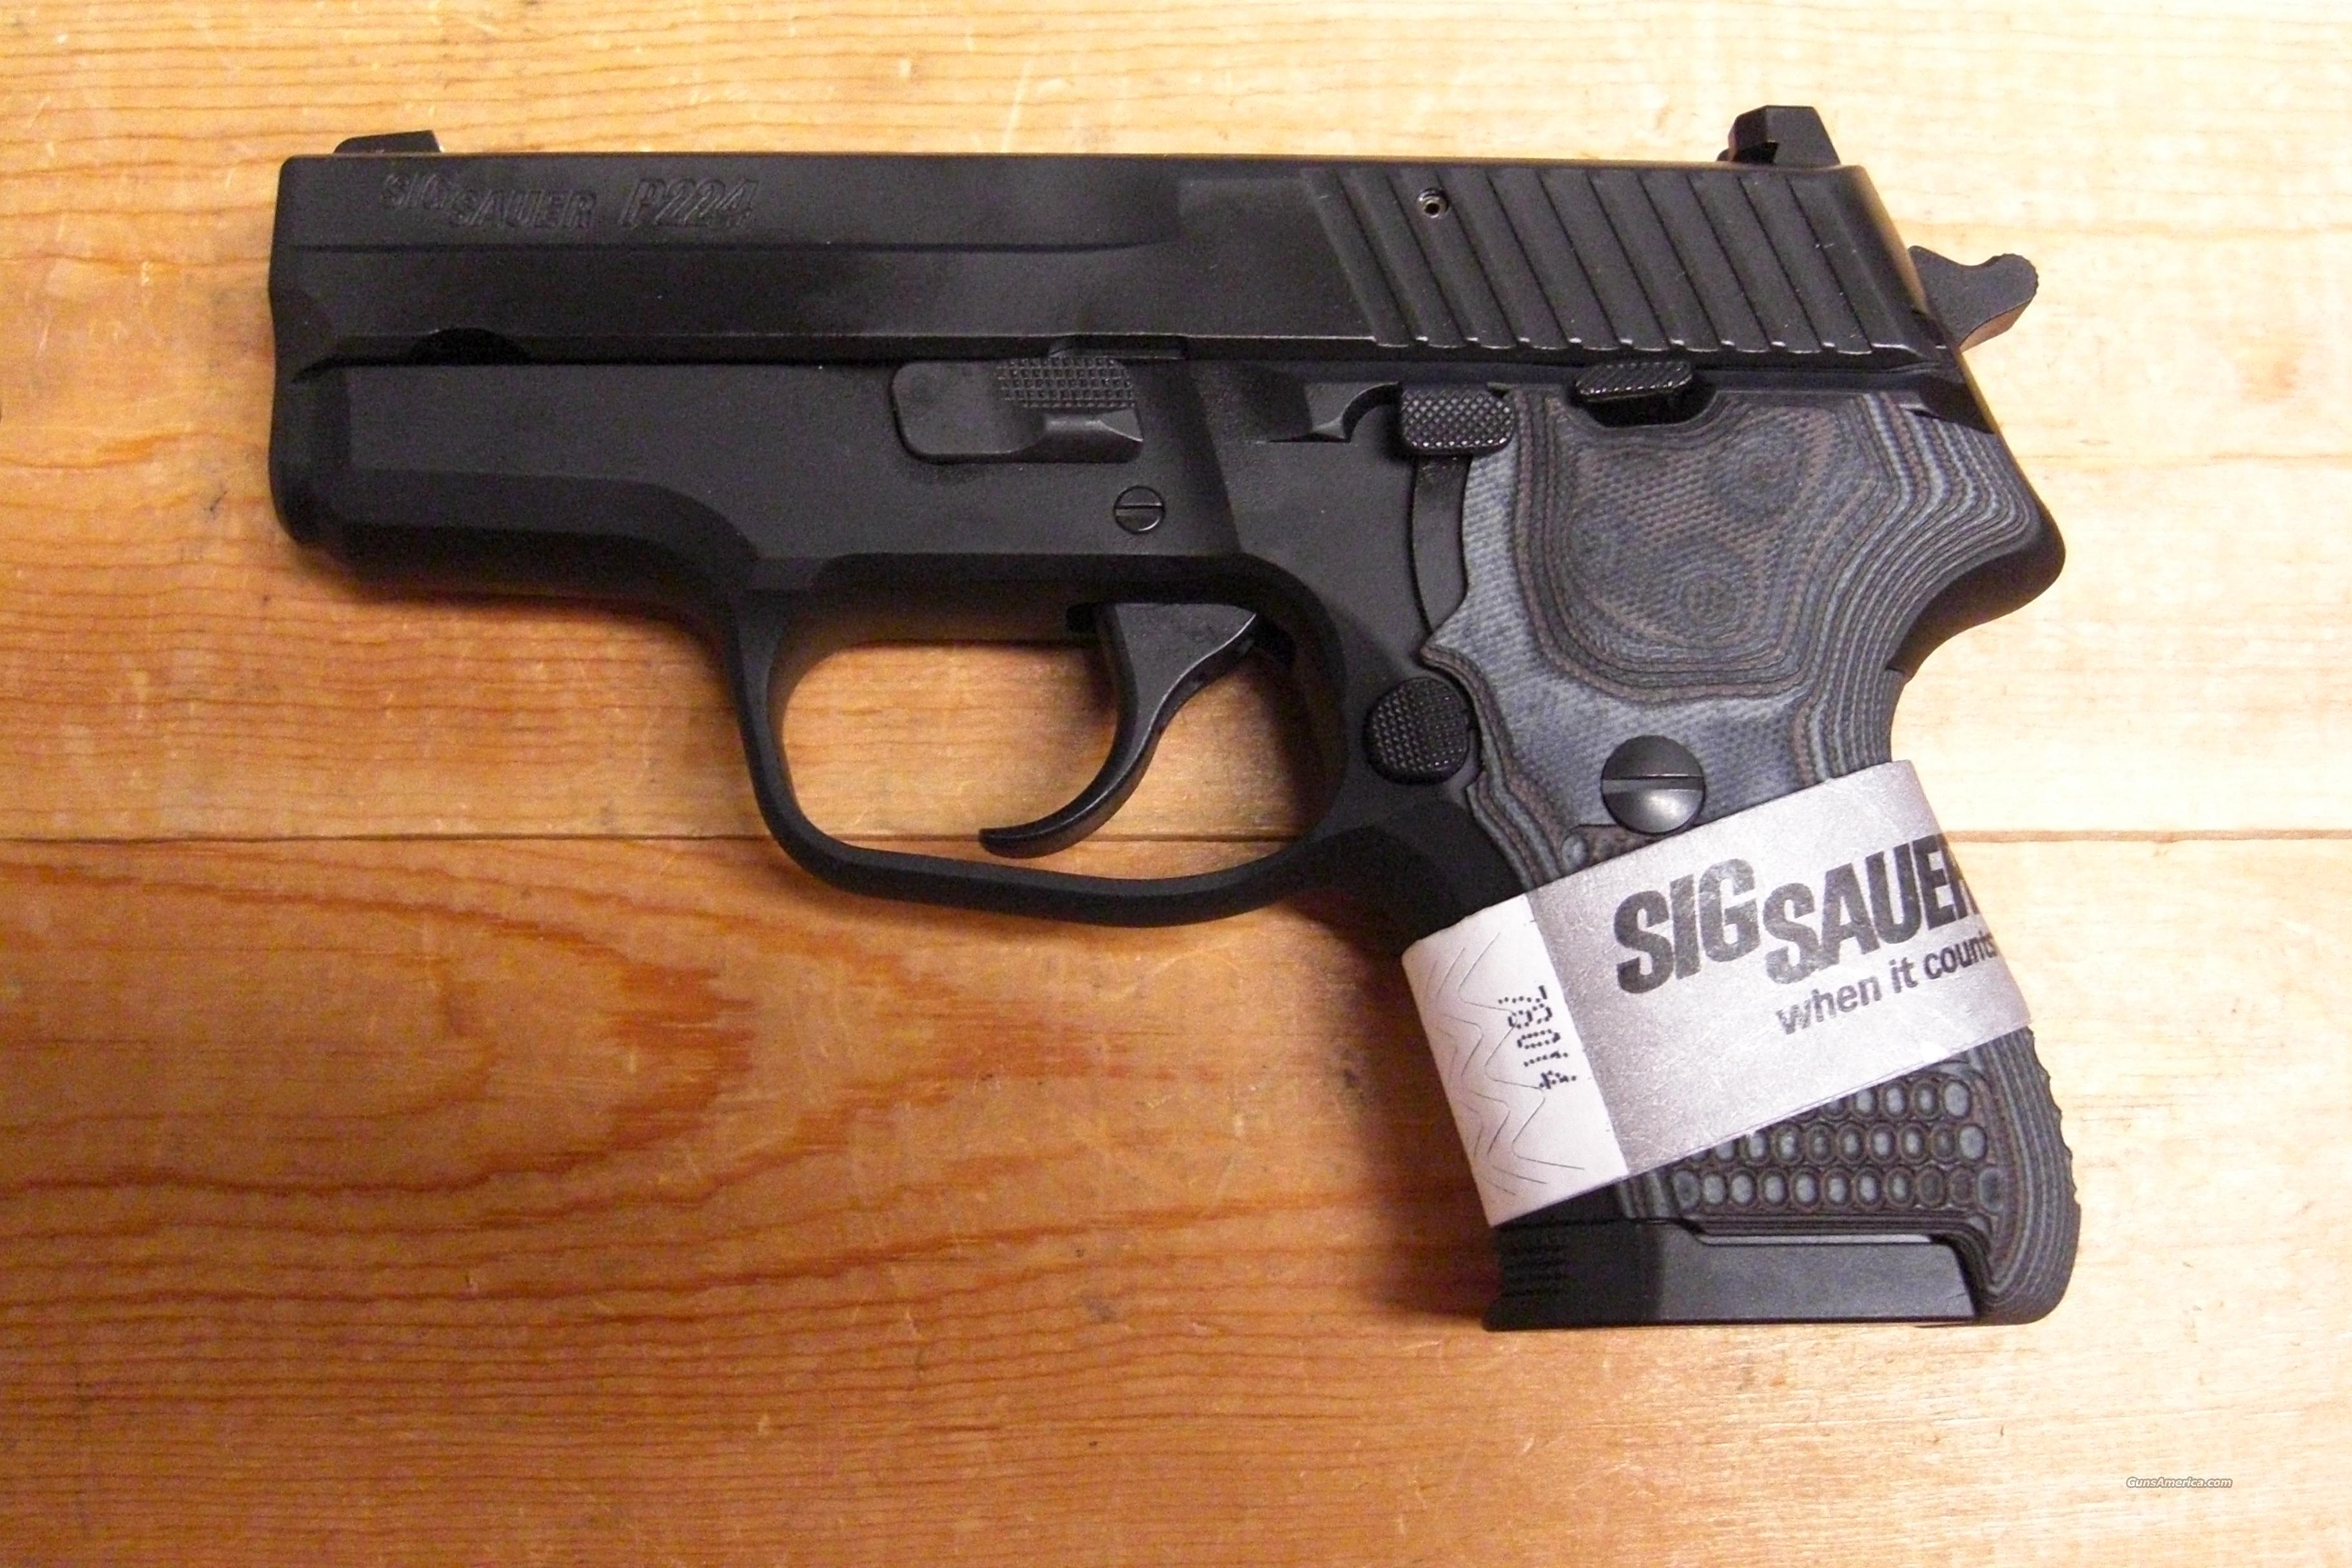 P224 Extreme  w/night sights  Guns > Pistols > Sig - Sauer/Sigarms Pistols > Other